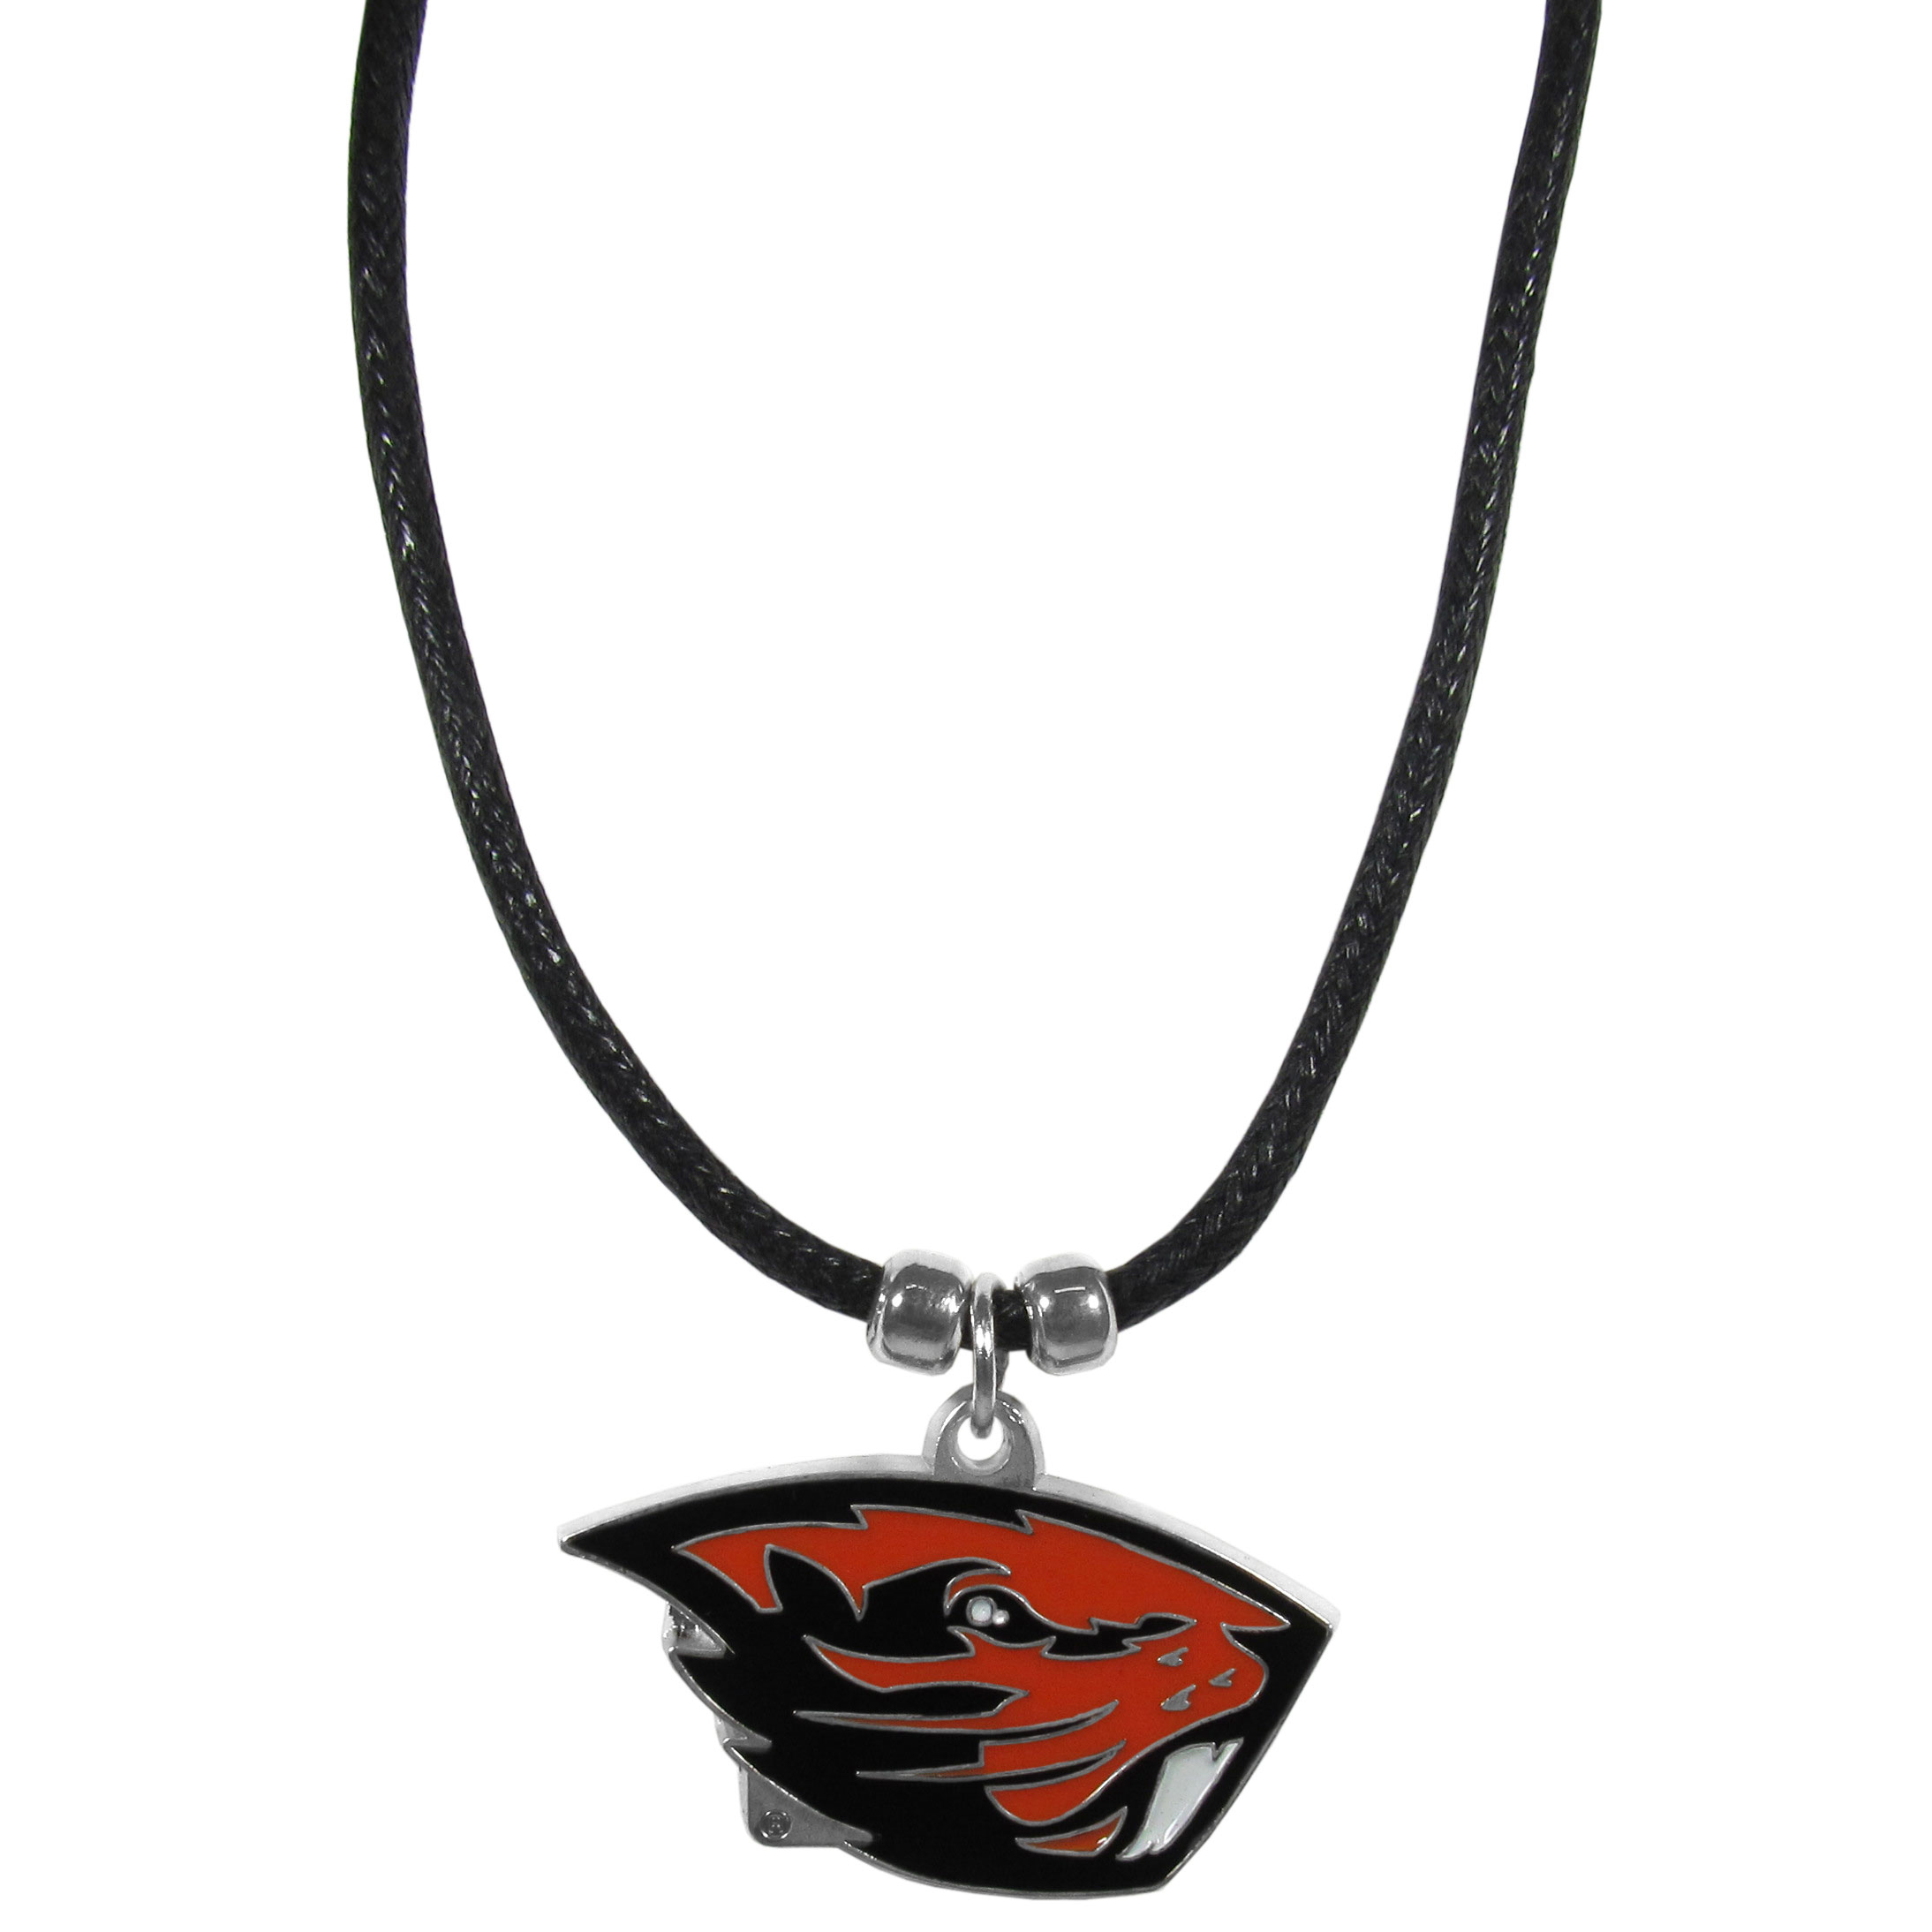 Oregon St. Beavers Cord Necklace - This classic style cotton cord necklace features an extra large Oregon St. Beavers pendant on a 21 inch cord.